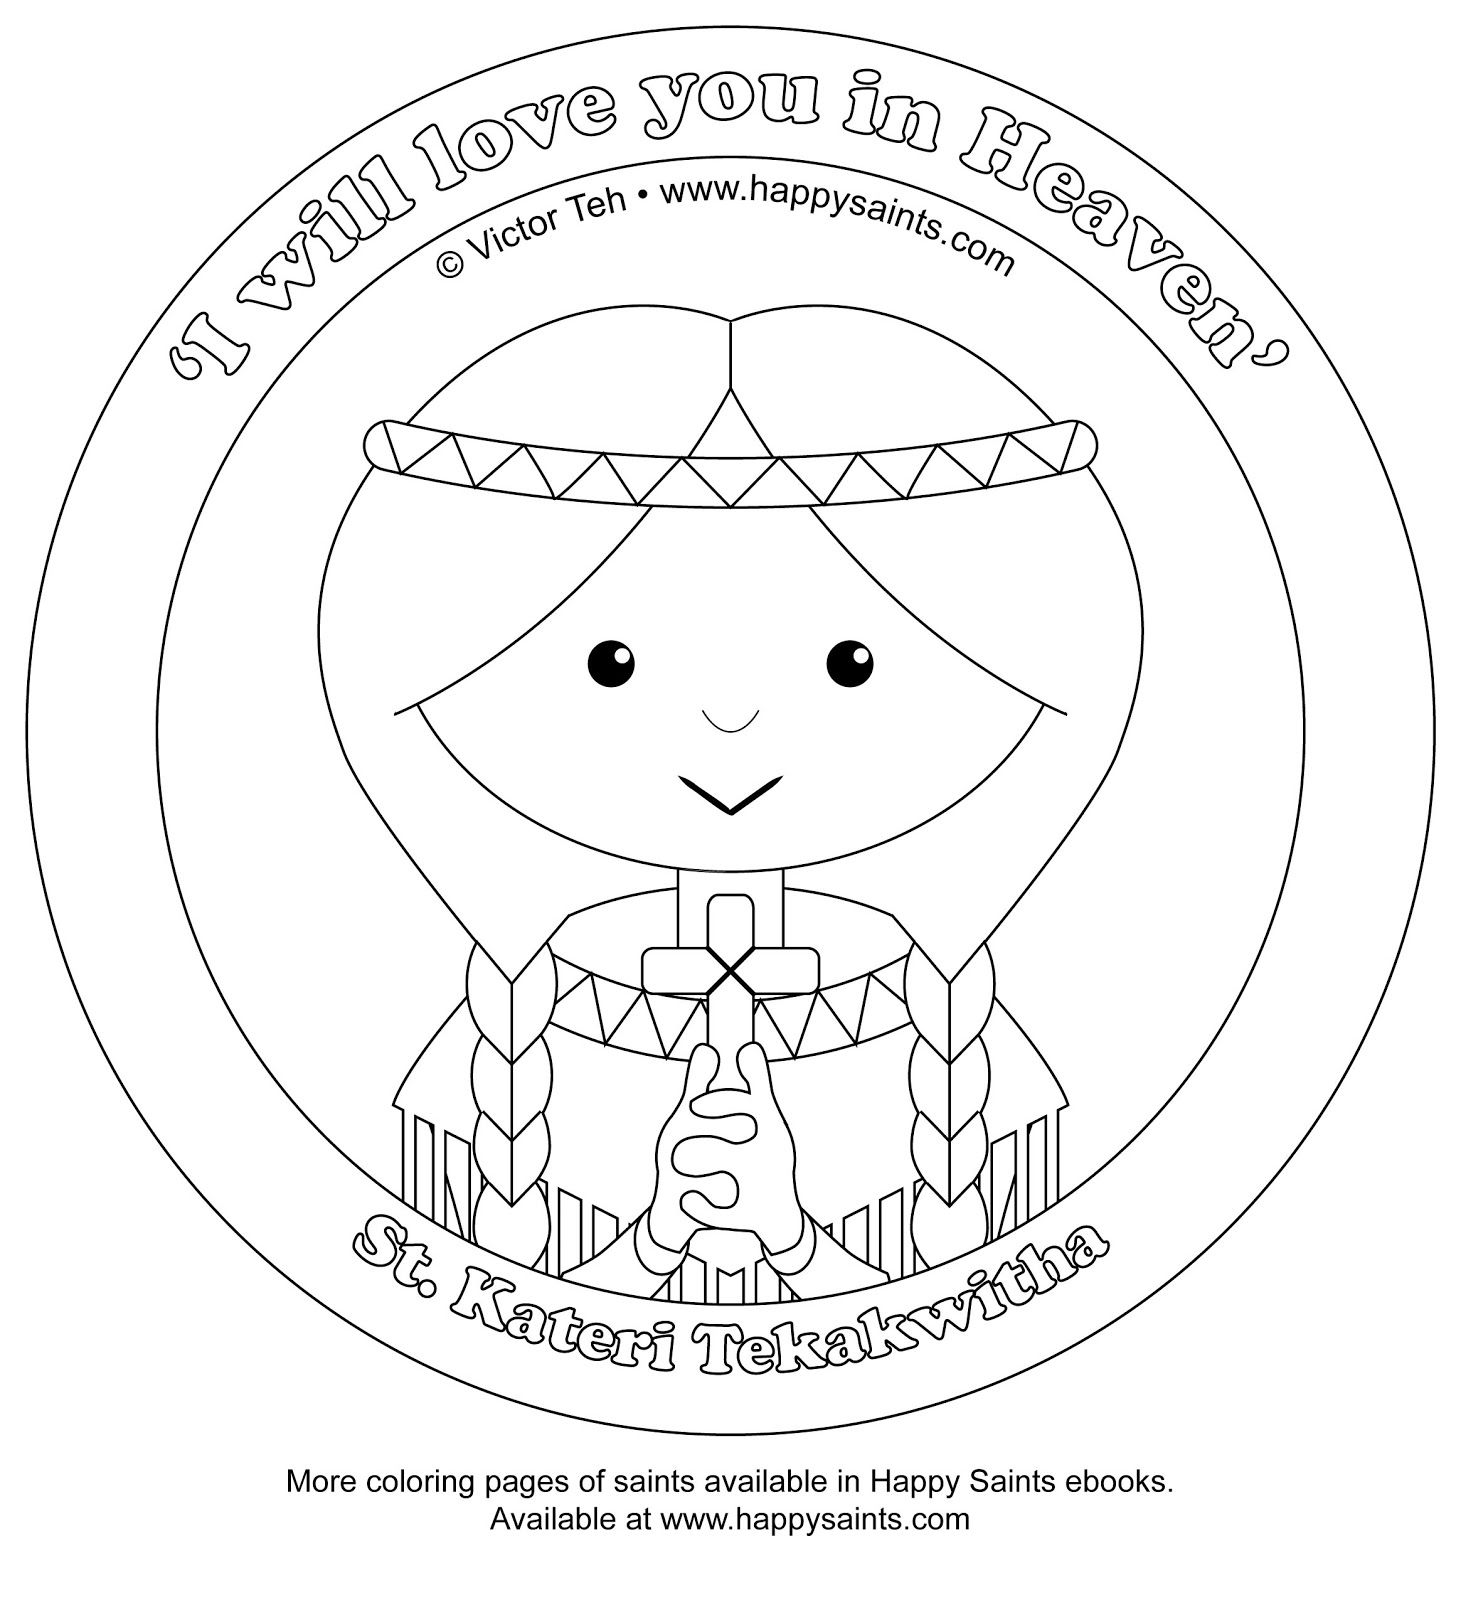 Adult Beauty Coloring Pages Of Saints Images top 1000 images about saints on pinterest coloring pages catholic and pope francis images